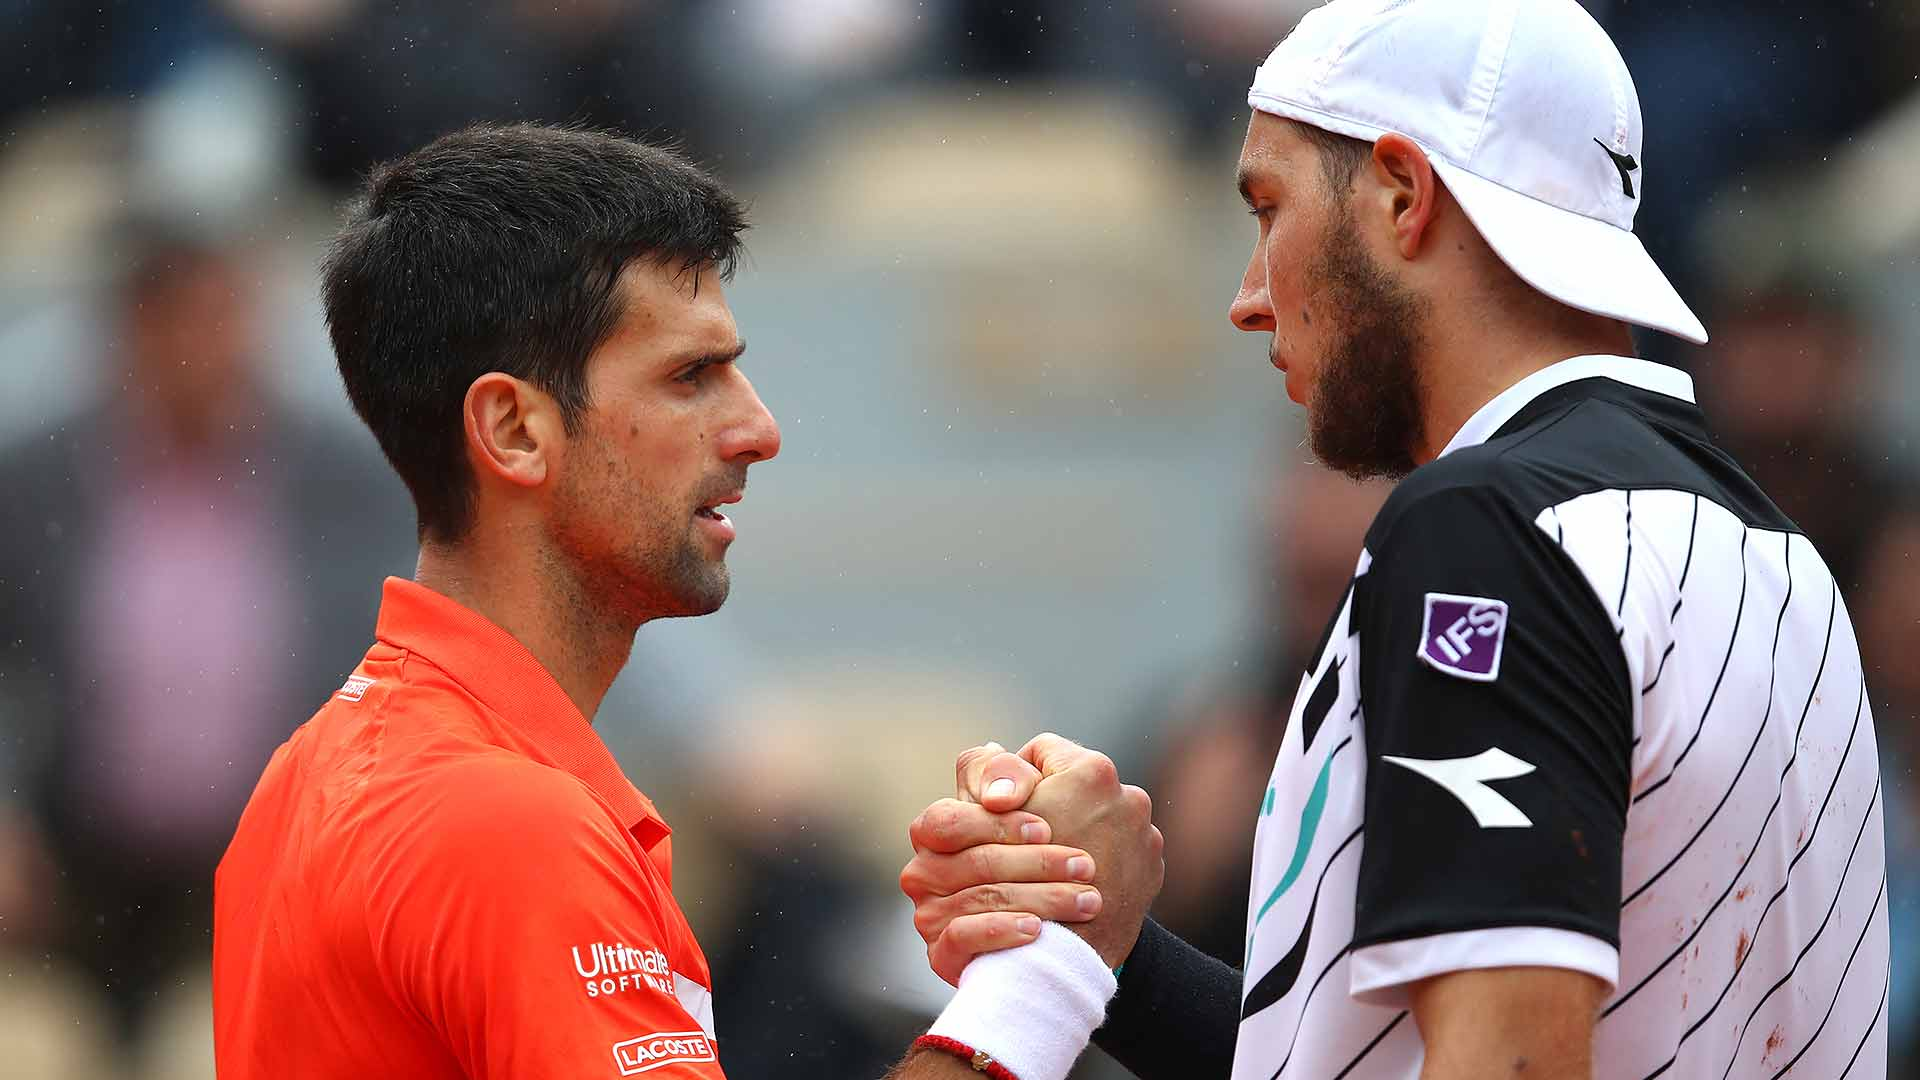 Novak Djokovic and Jan-Lennard Struff will meet for the third time on Monday night at the Australian Open.